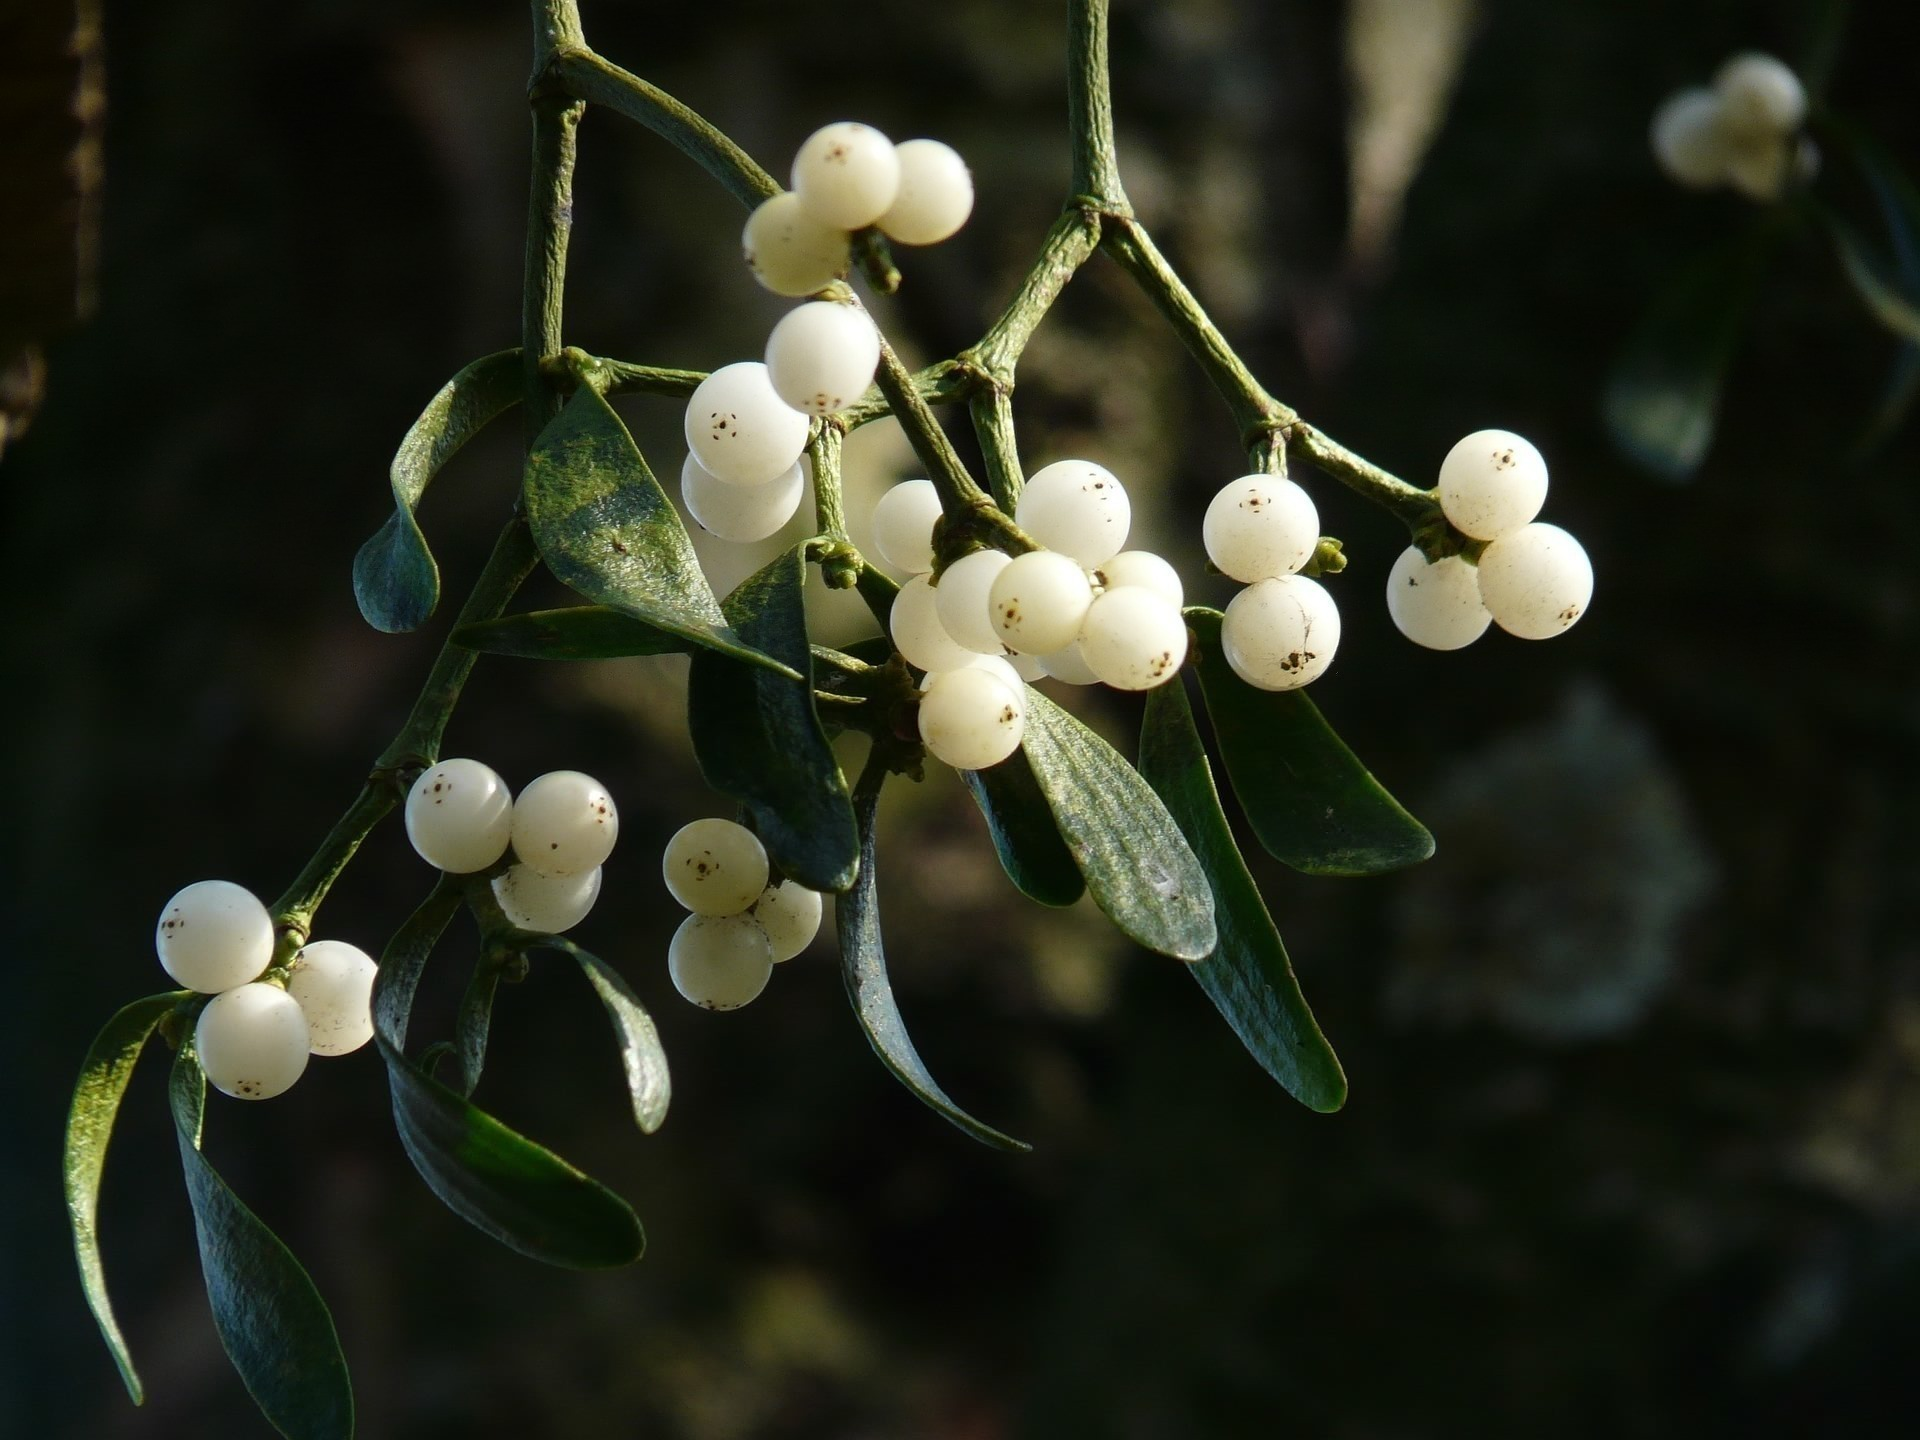 Druids in classical writing with mistletoe berries